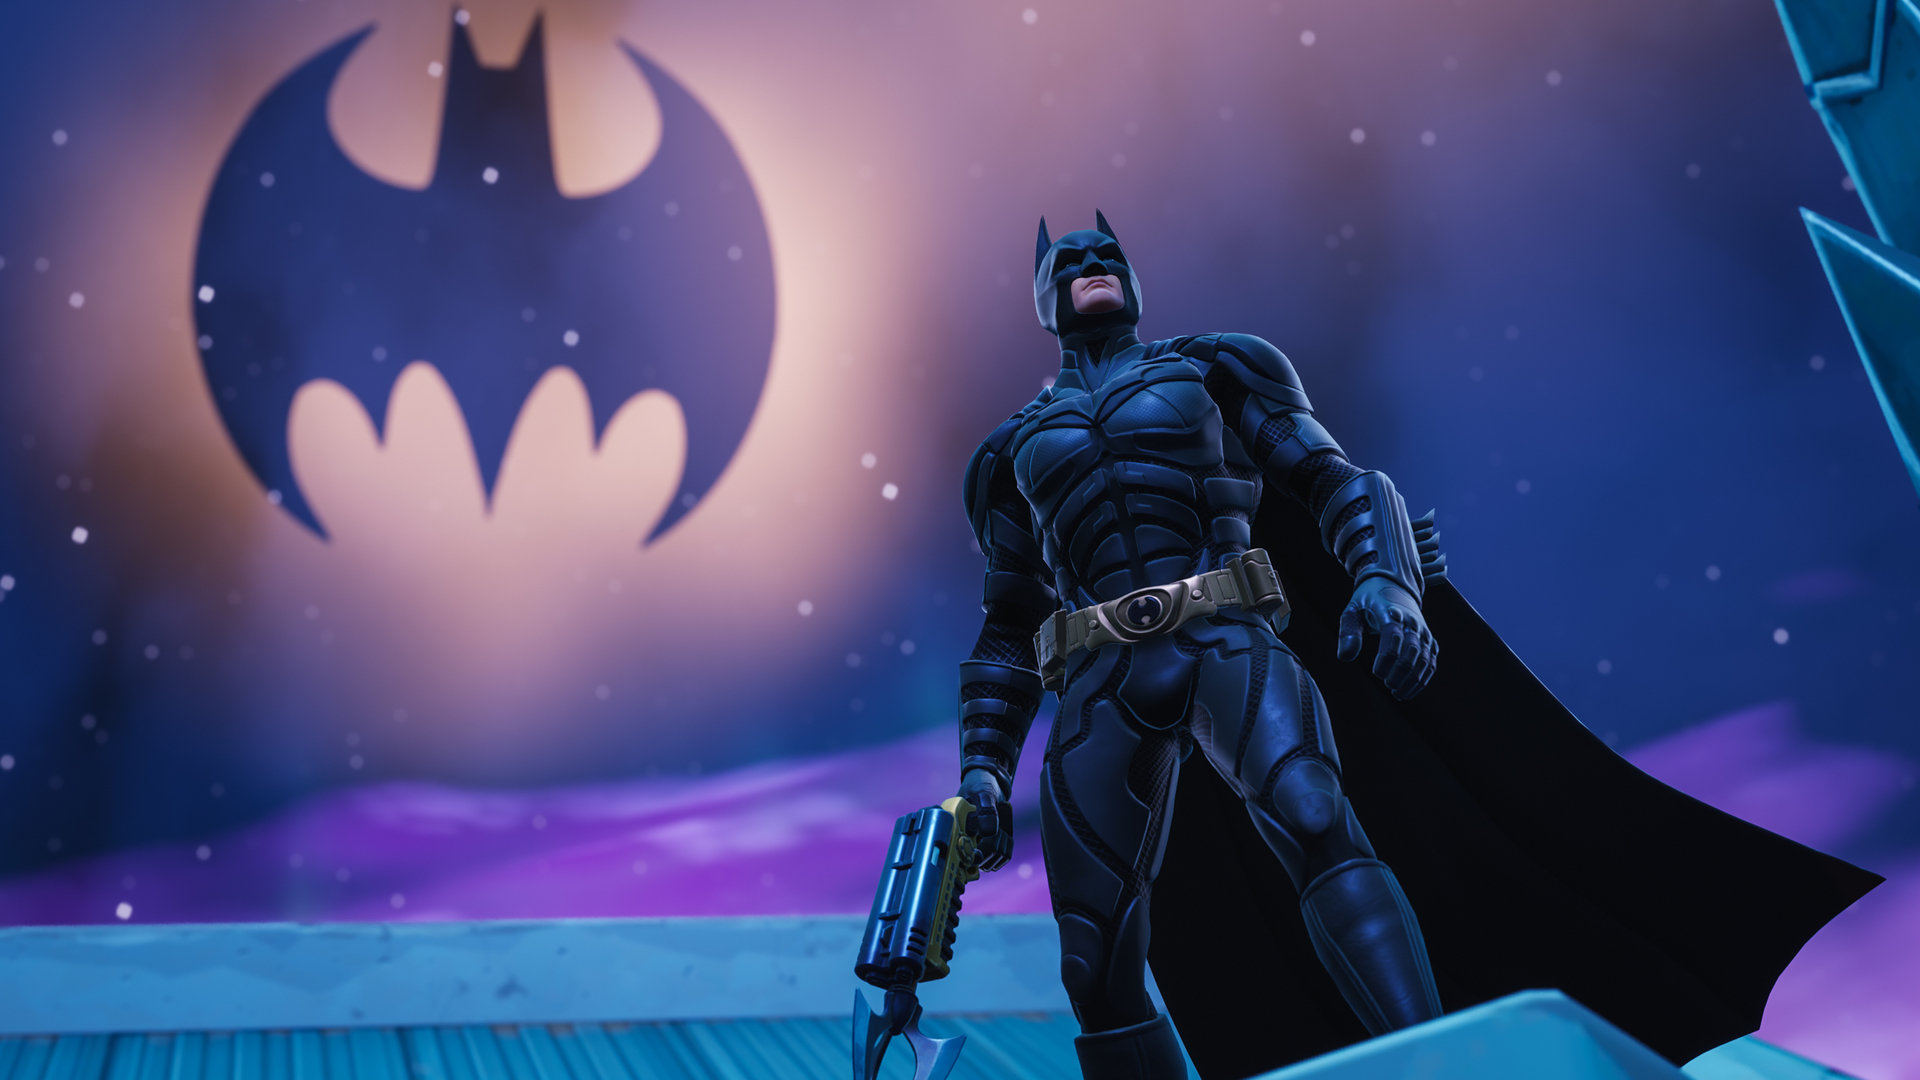 1920x1080 Fortnite Batman Laptop Full Hd 1080p Hd 4k Wallpapers Images Backgrounds Photos And Pictures